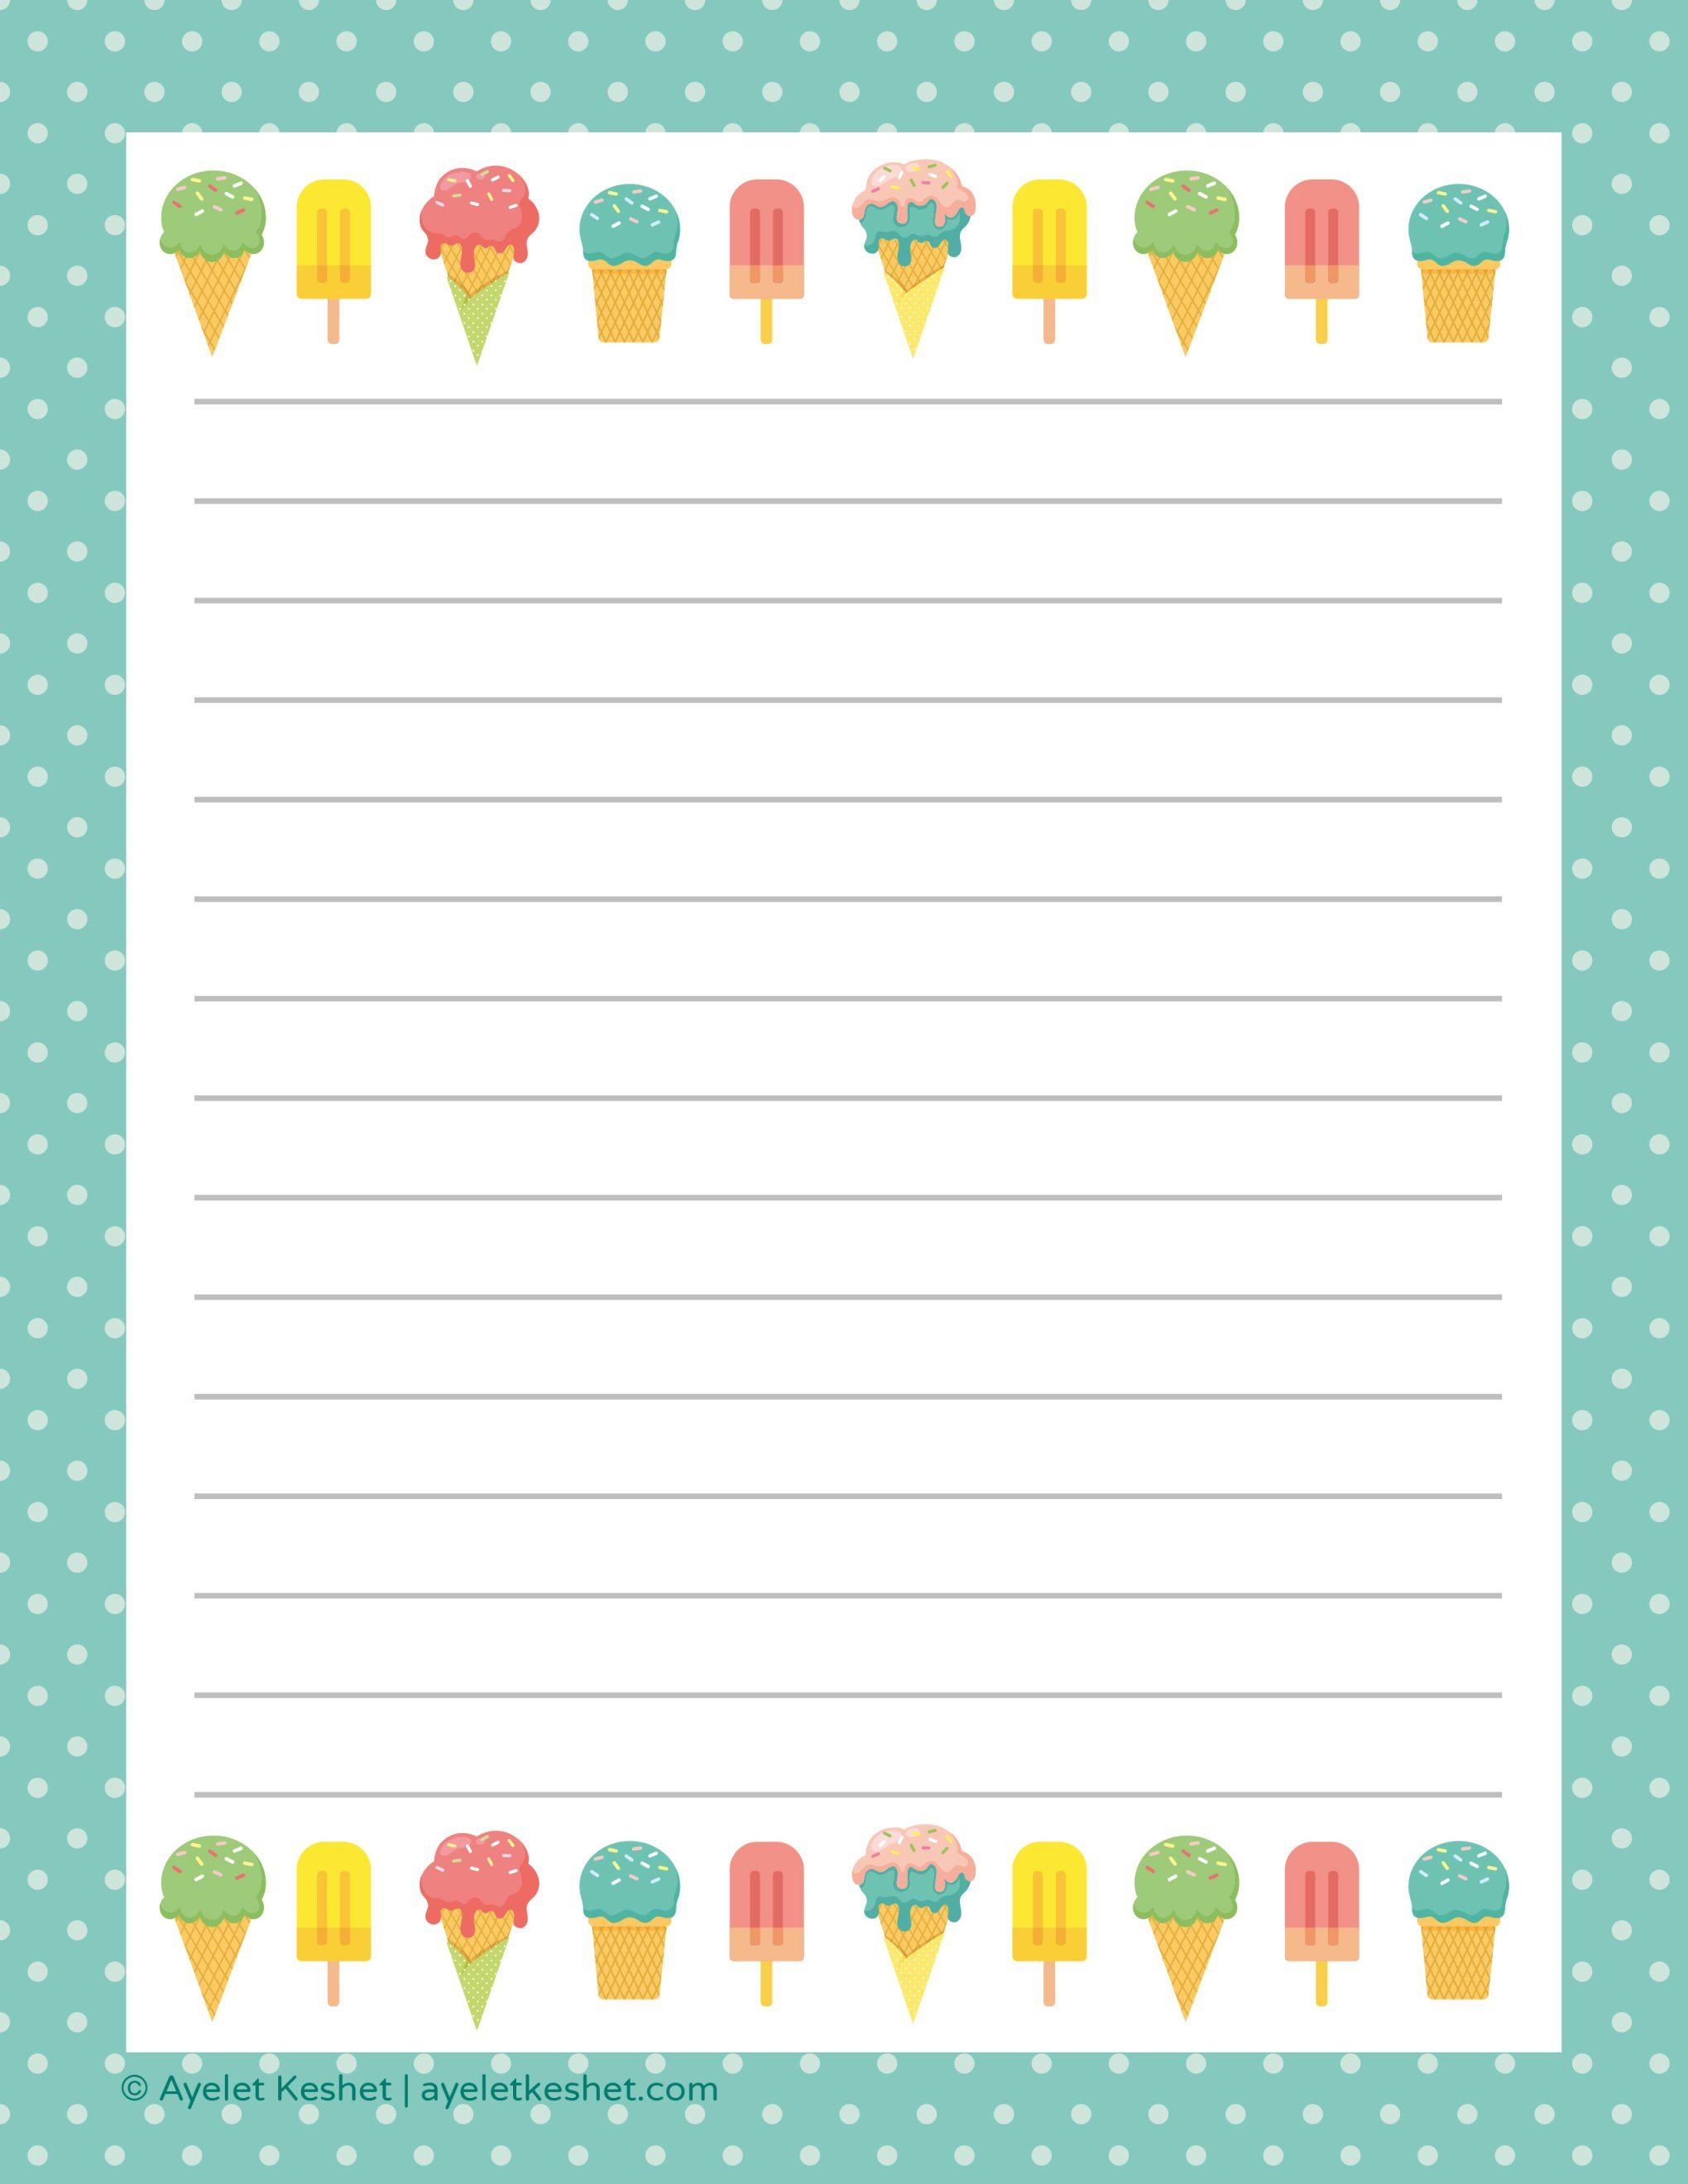 Free Printable Letter Paper | Printables To Go | Free Printable - Free Printable Stationery Writing Paper